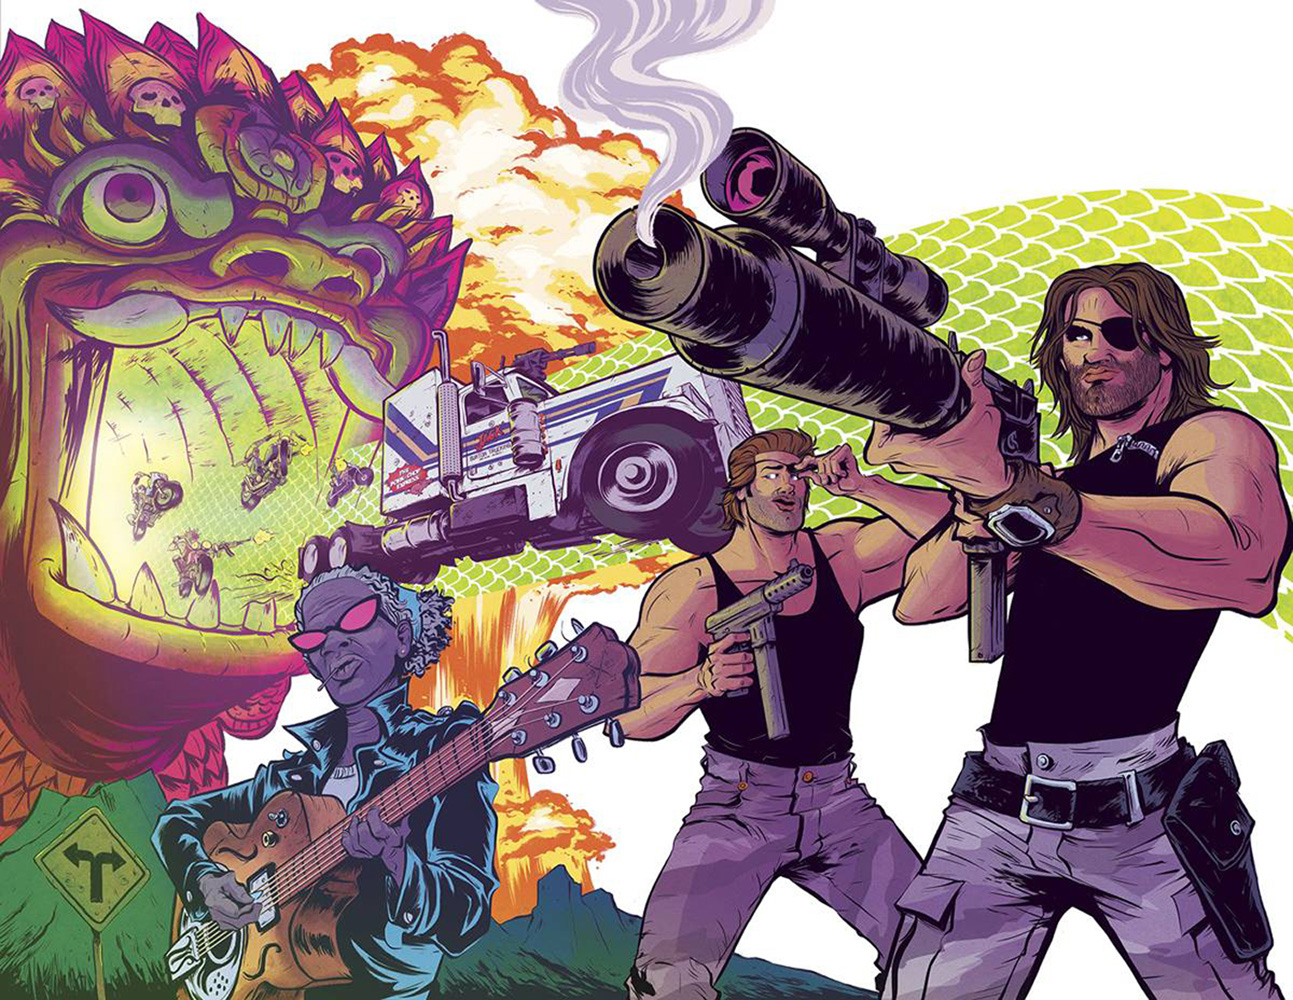 Big Trouble in Little China / Escape from New York #4 (wraparound cover - Bayliss)  [2017] - Boom! Studios